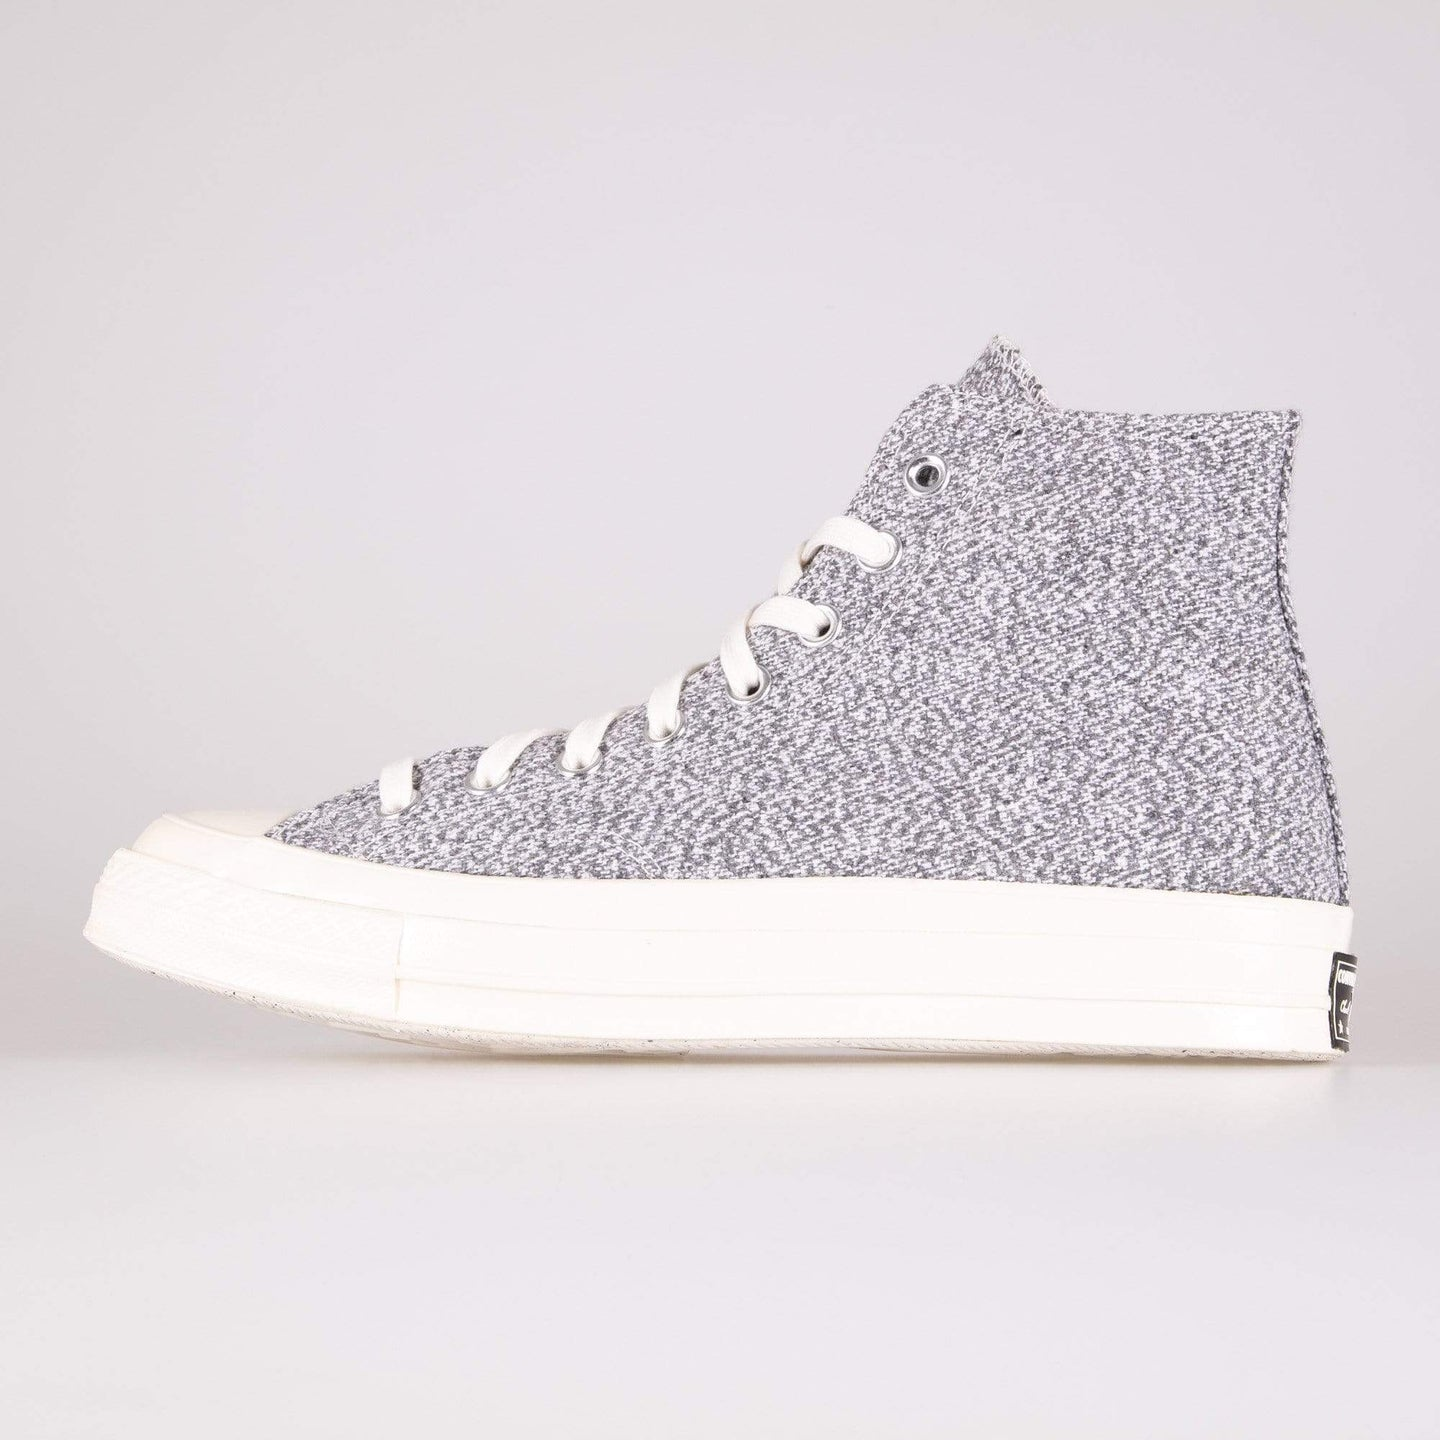 Converse Chuck 70 Hi Recycled Canvas - Black / White / Egret UK 7 166702C7 888757725281 Converse Trainers